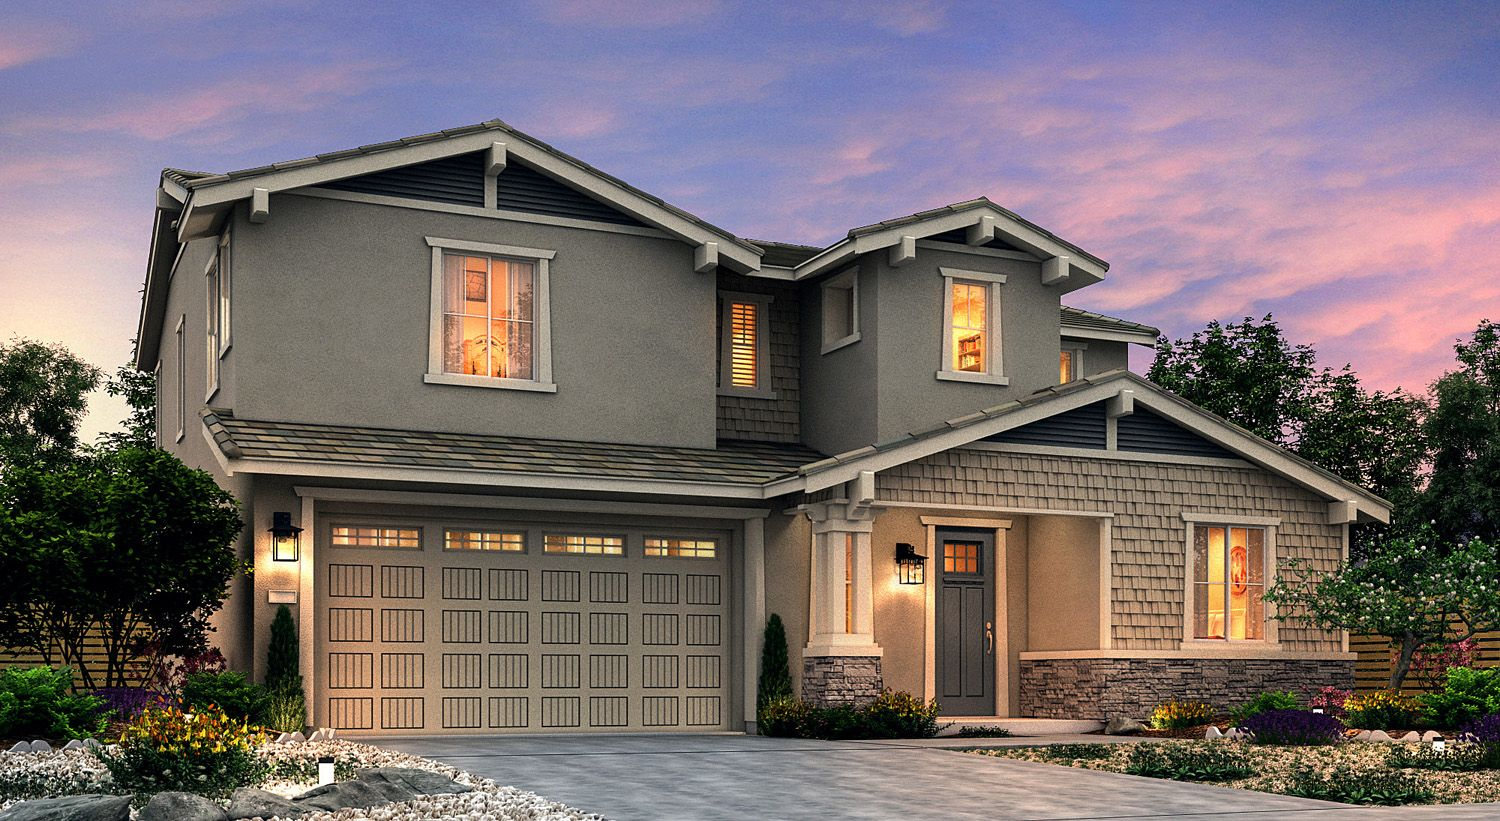 Single Family for Active at Creekside - Waterlily 5017 Brightside Lane Roseville, California 95661 United States